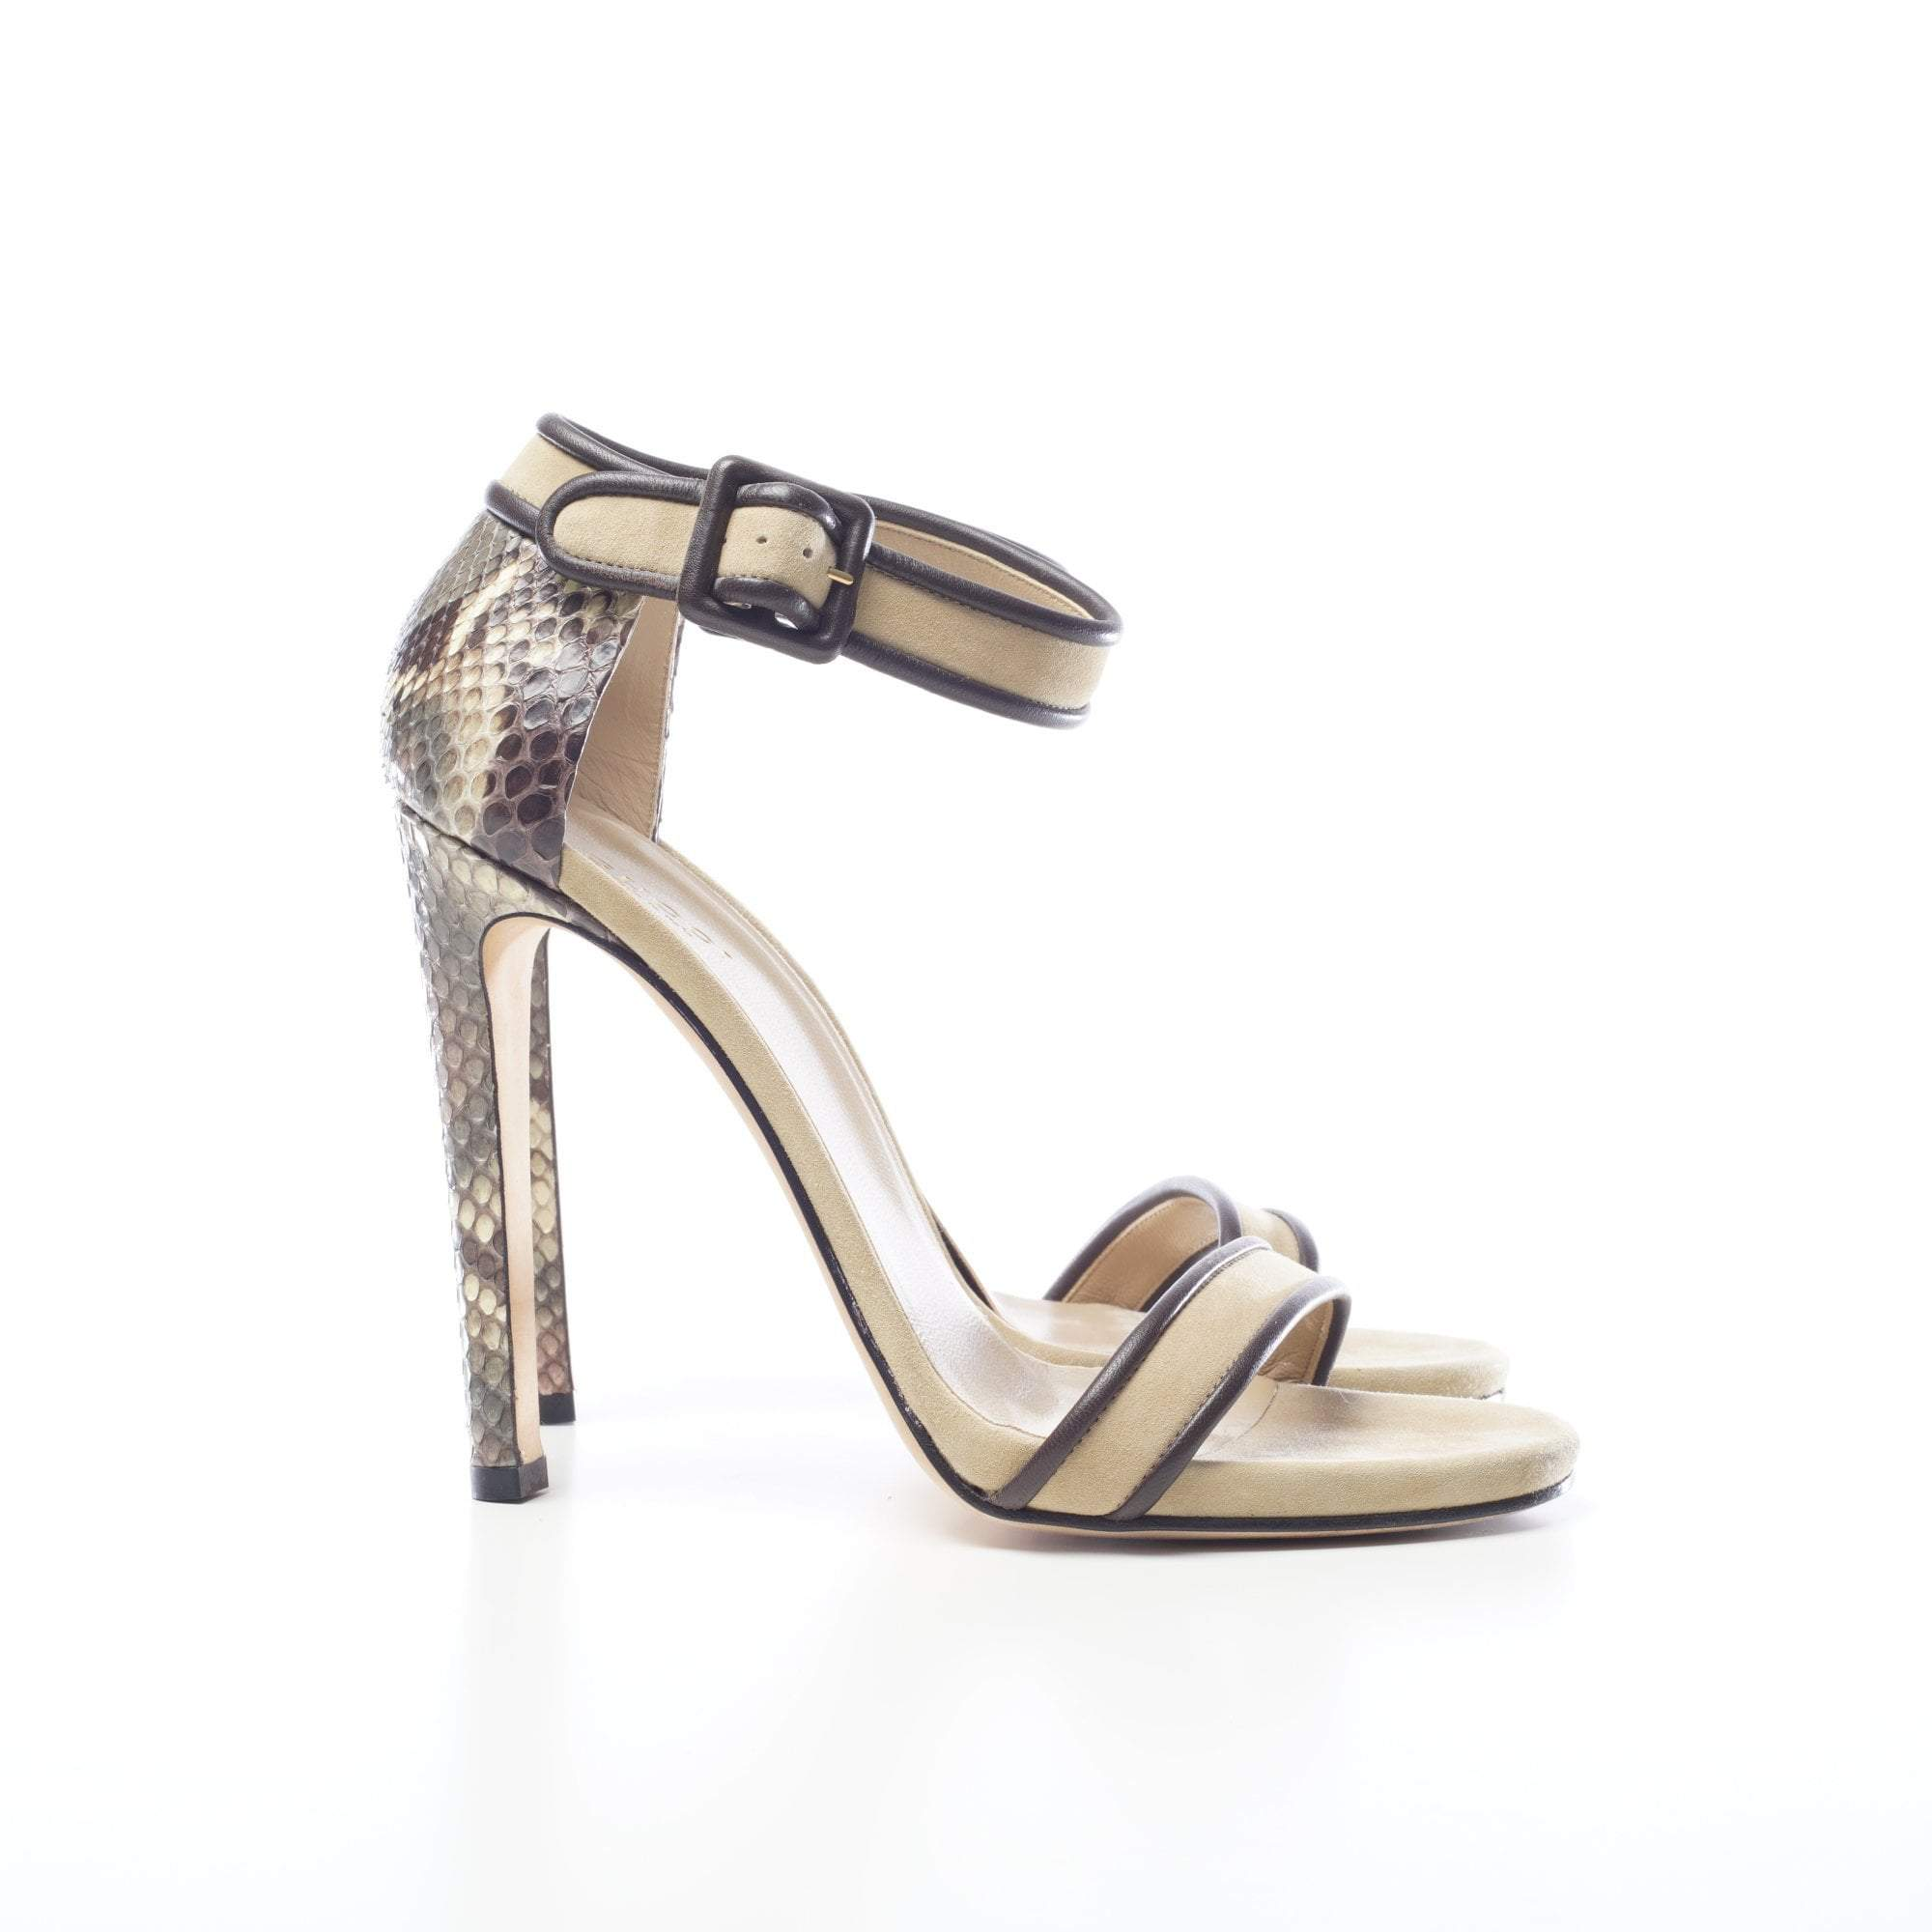 Gucci Python and Suede Sandal Heels